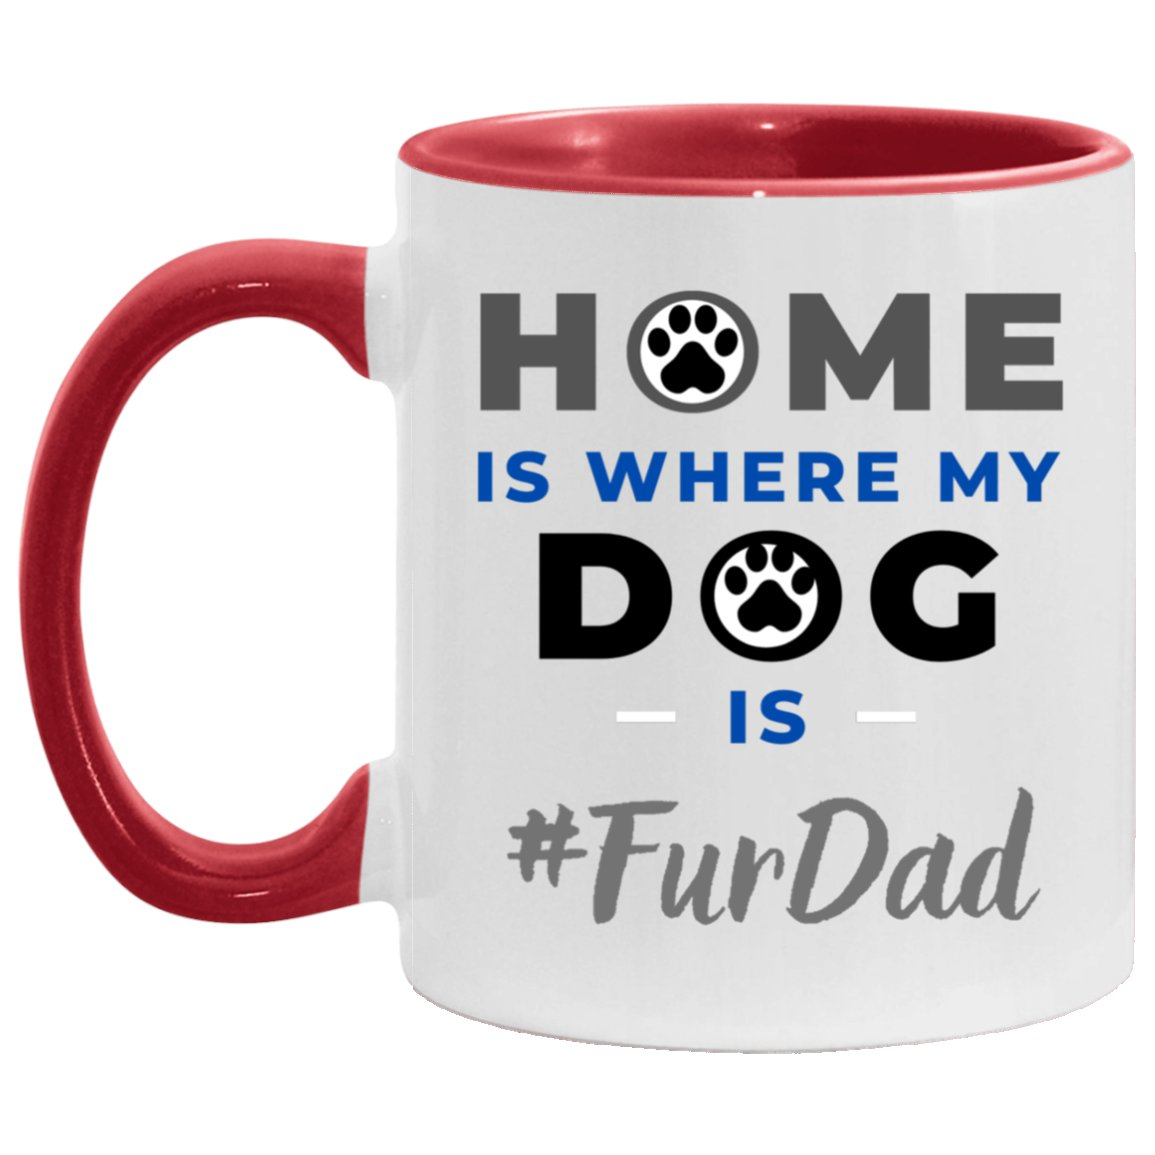 Buy any mug with us & get the 2nd for 65% with the code: MUGLOVE Ships Free! #trending #Christmas2020 #retweet   Link here ?